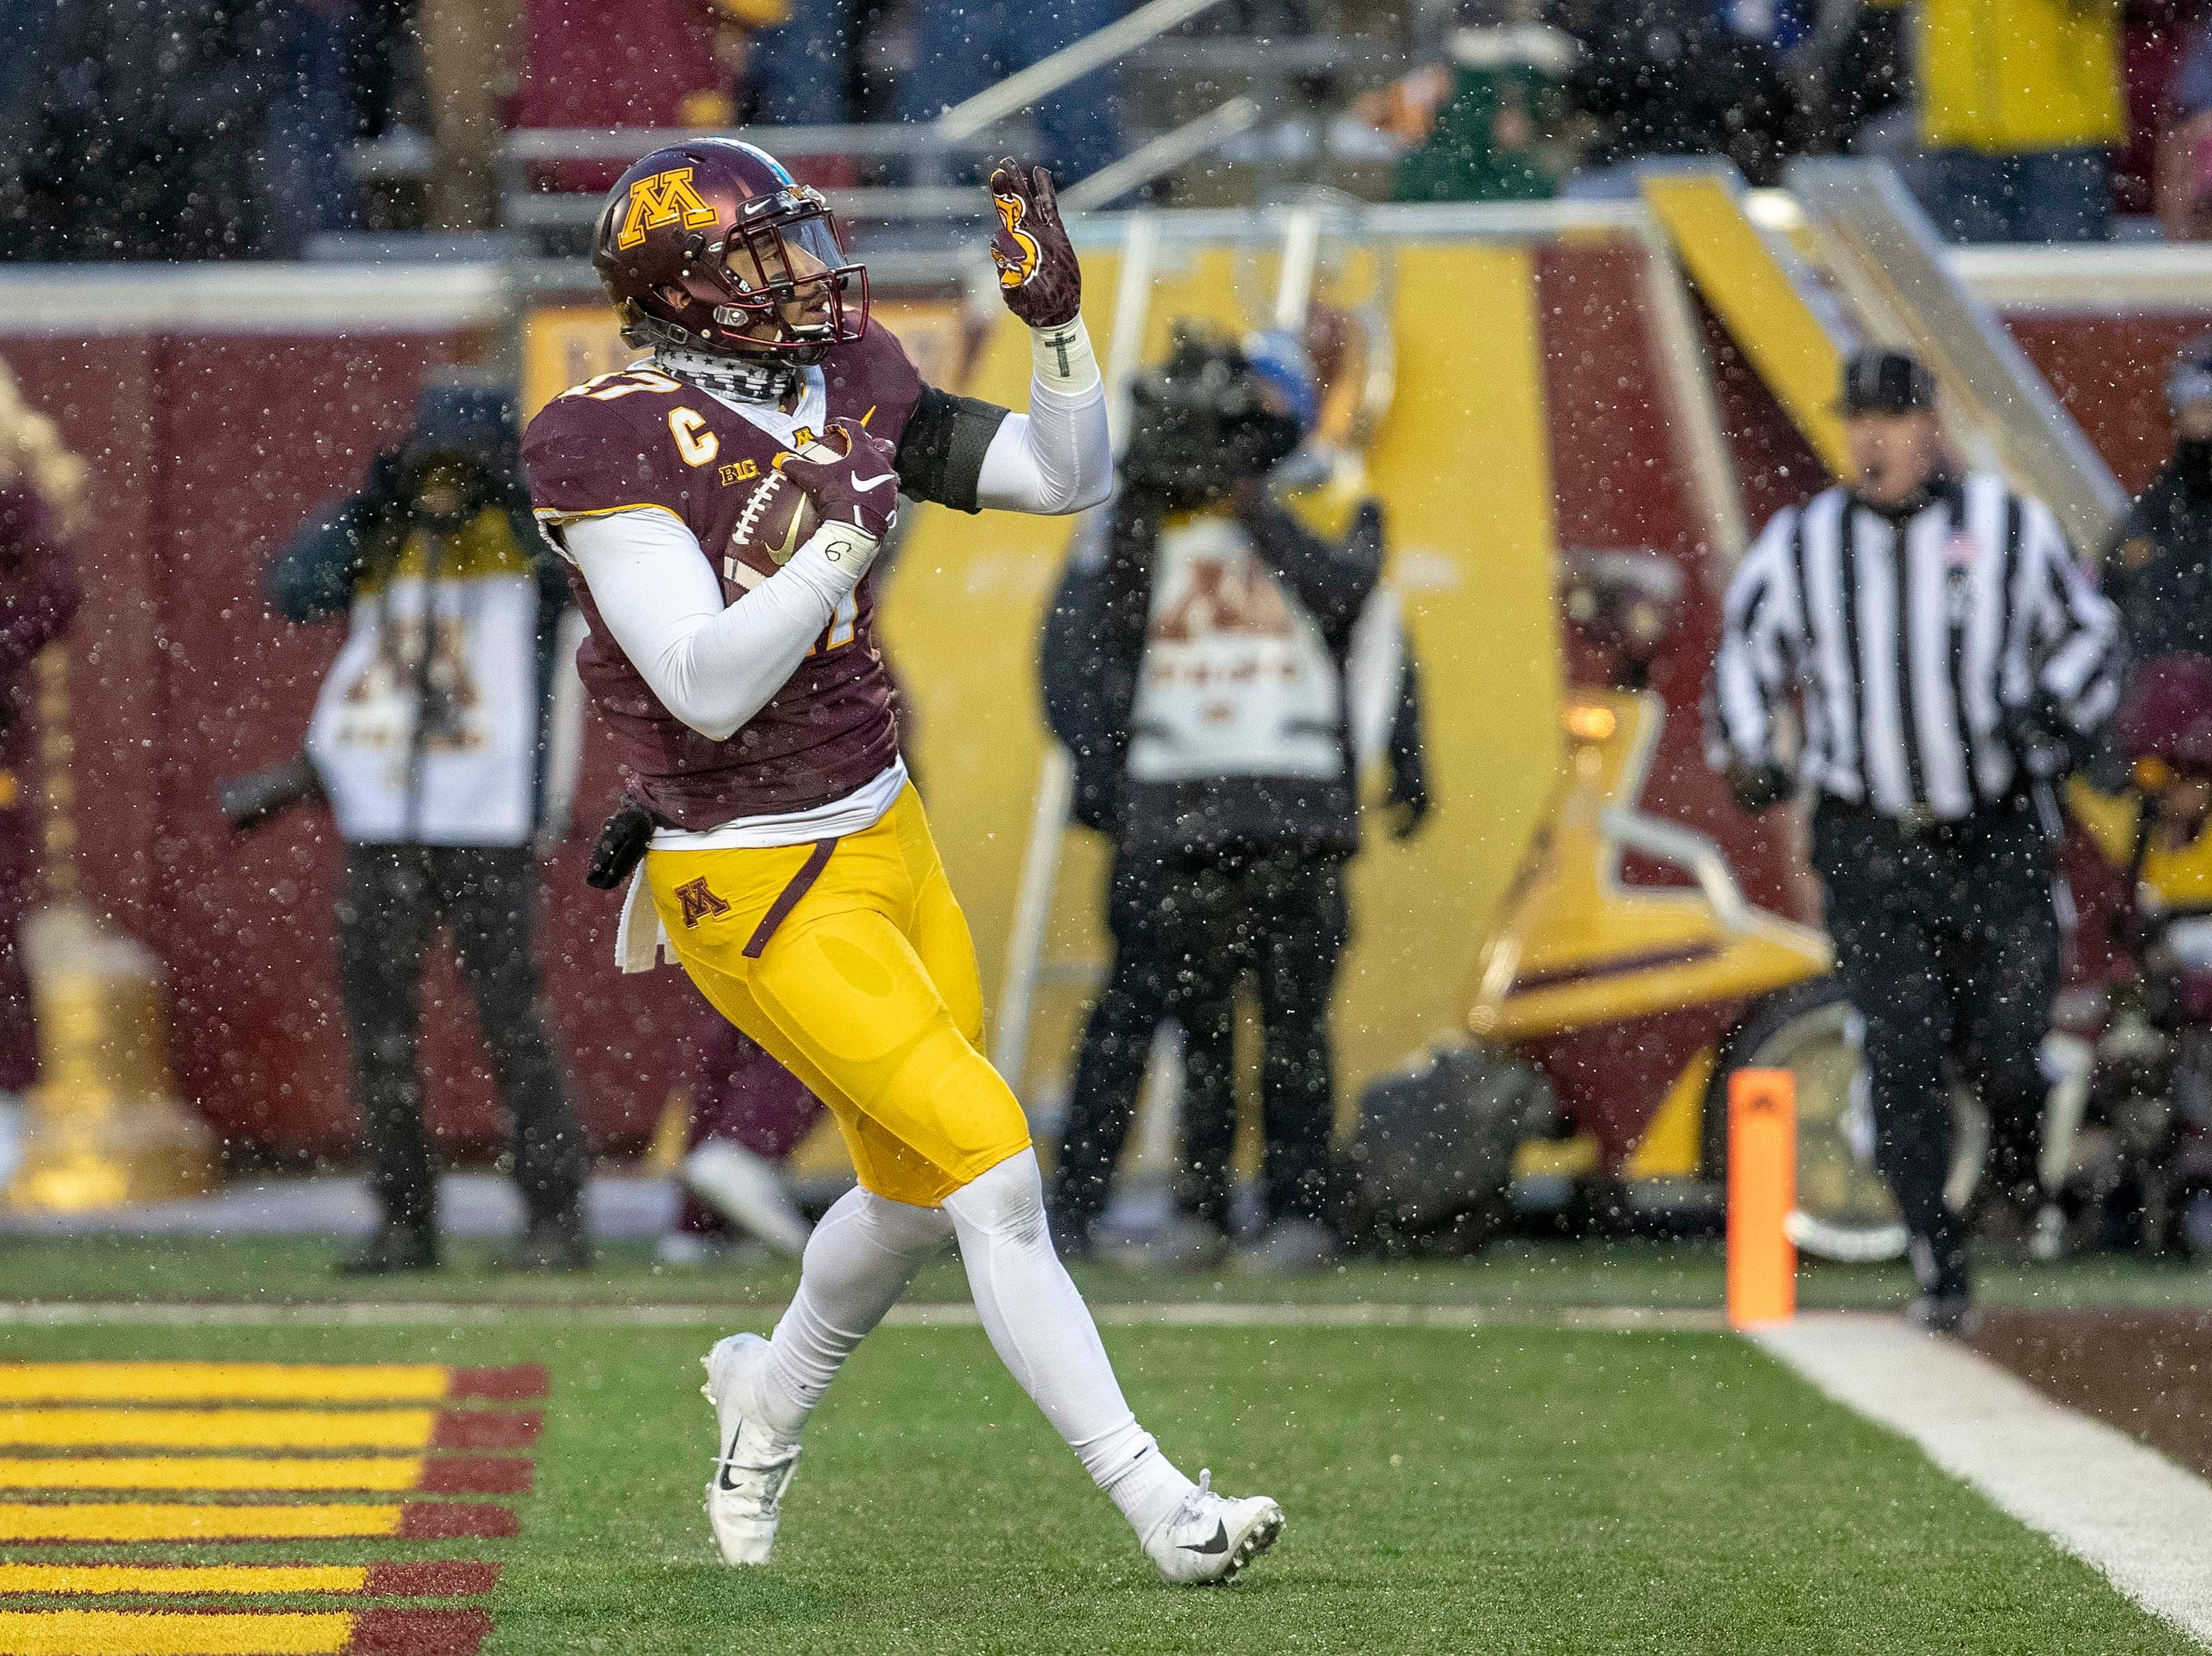 Minnesota Golden Gophers wide receiver Seth Green (17) celebrates after scoring a touchdown in the second half against the Purdue Boilermakers at TCF Bank Stadium.